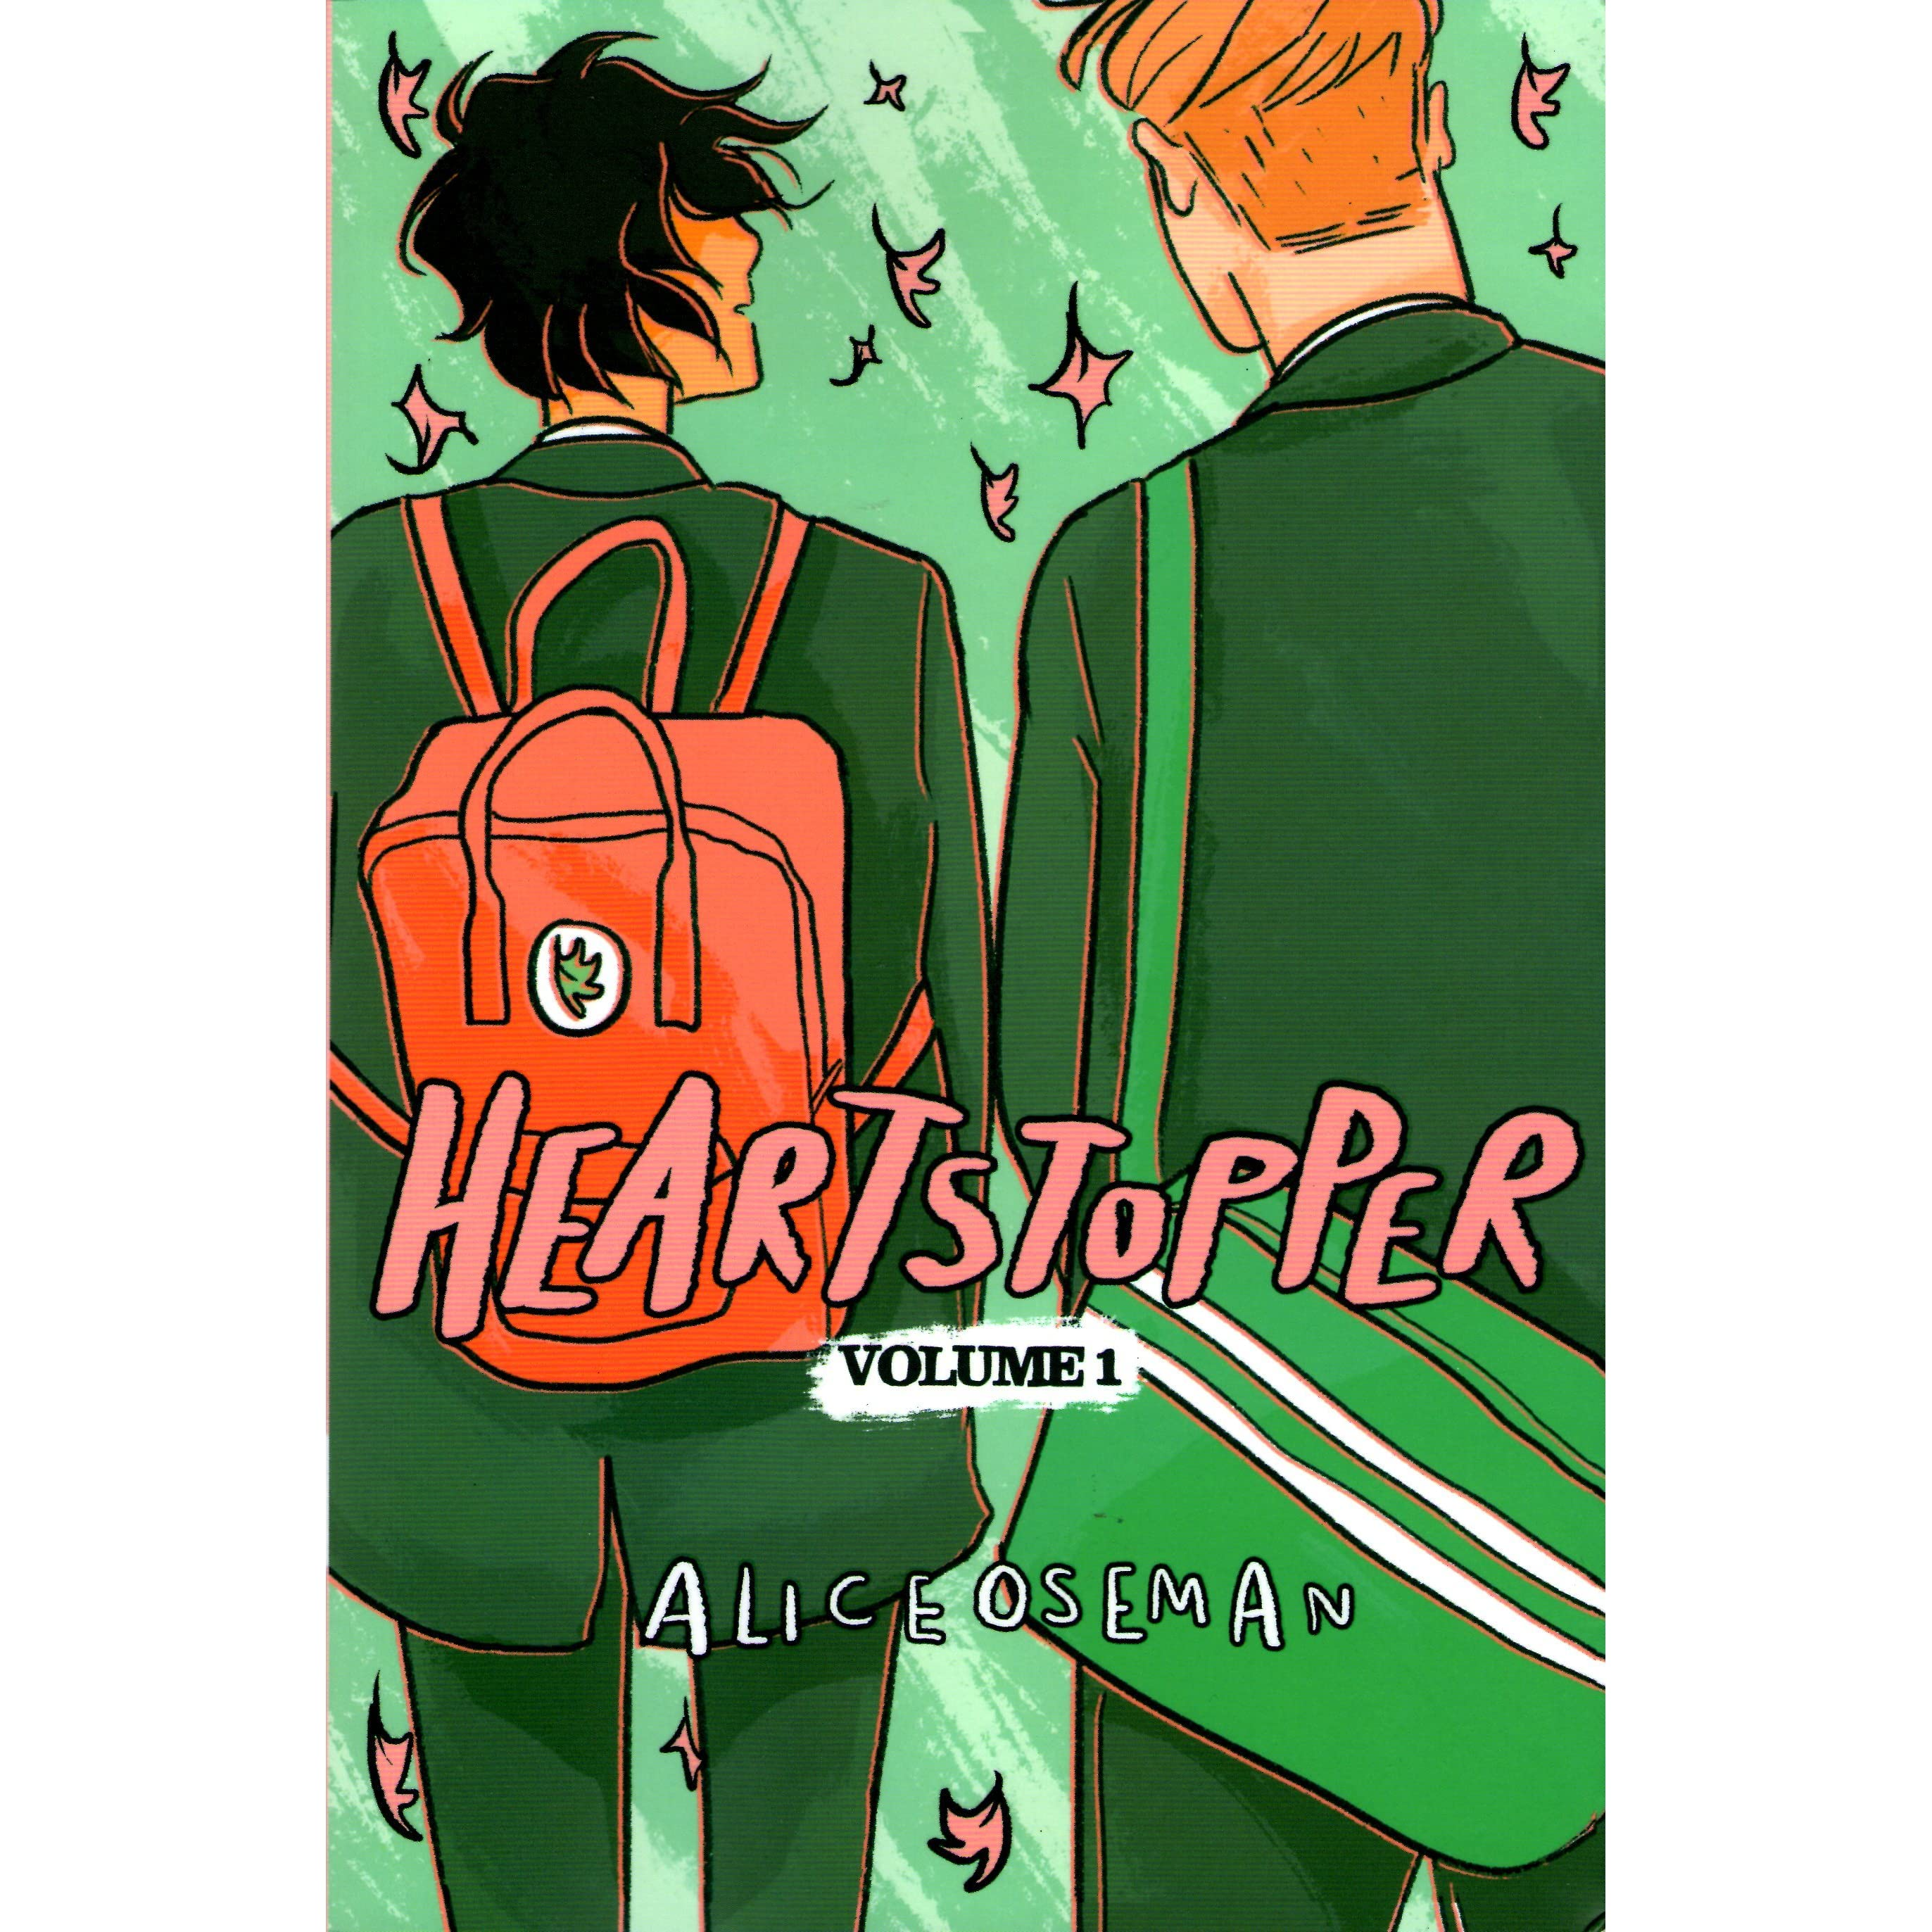 Image result for heartstoppers comic volumes